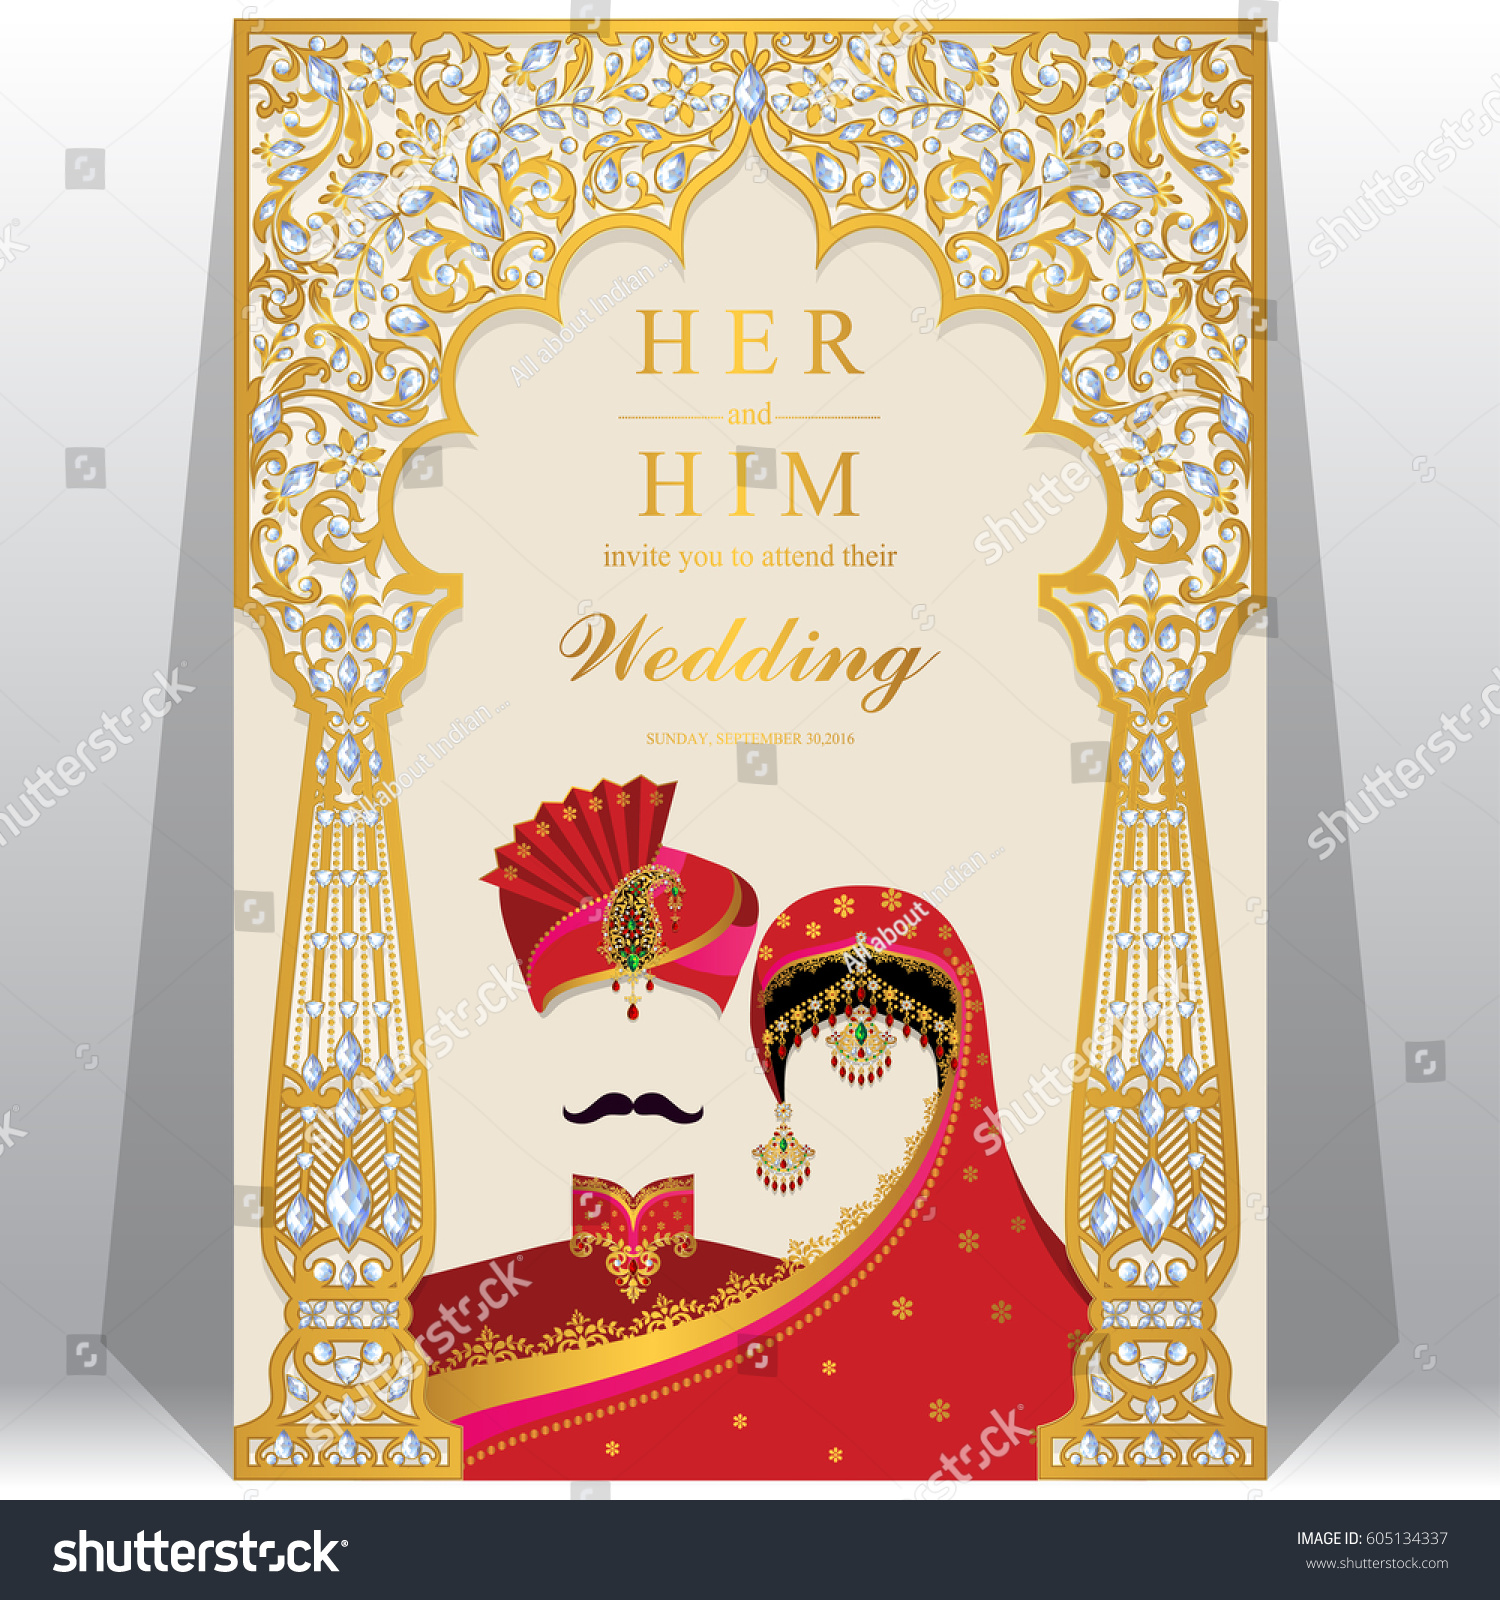 Indian Wedding Invitation Card Templates Gold Stock Vector 605134337 ...